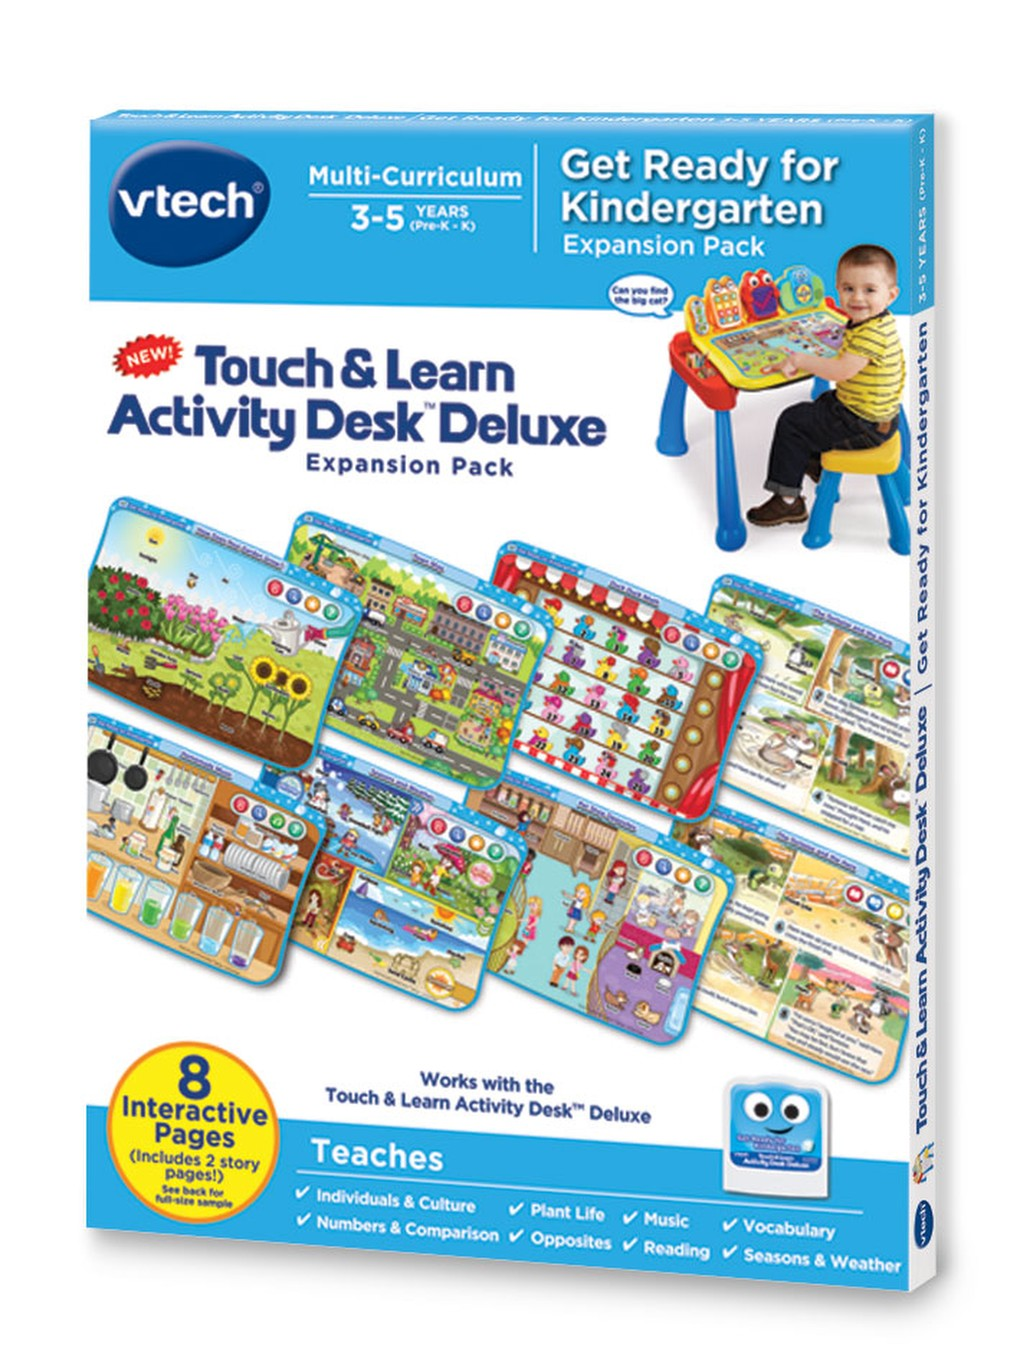 Touch & Learn Activity Desk™ Deluxe │ Get Ready for Kindergarten ...